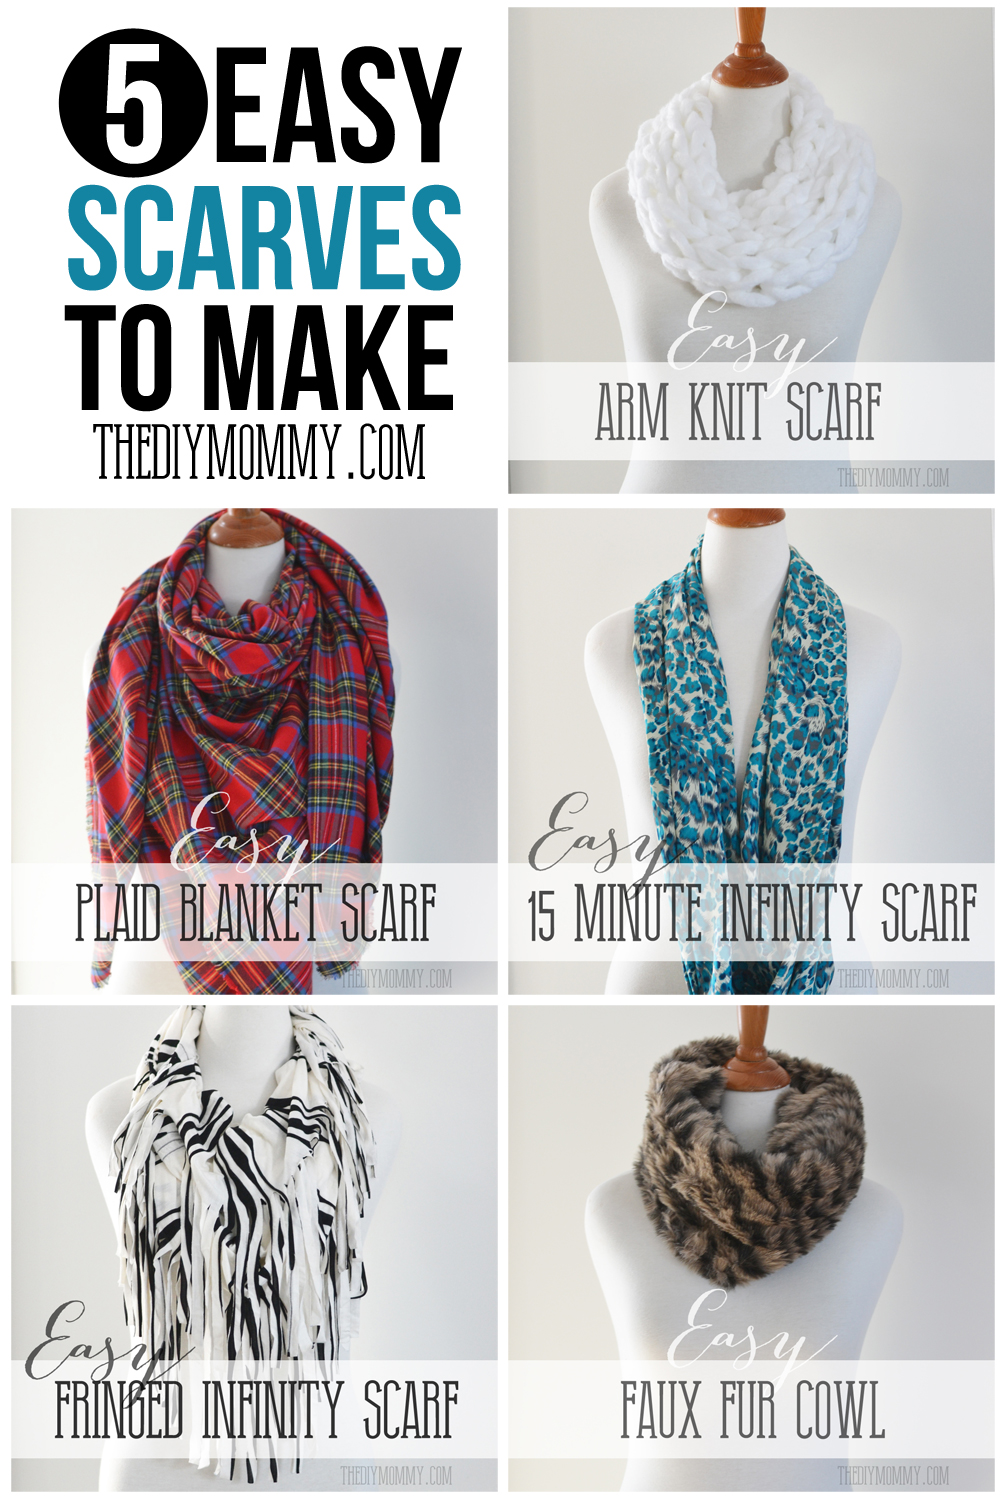 make an easy no sew diy plaid blanket scarf the diy